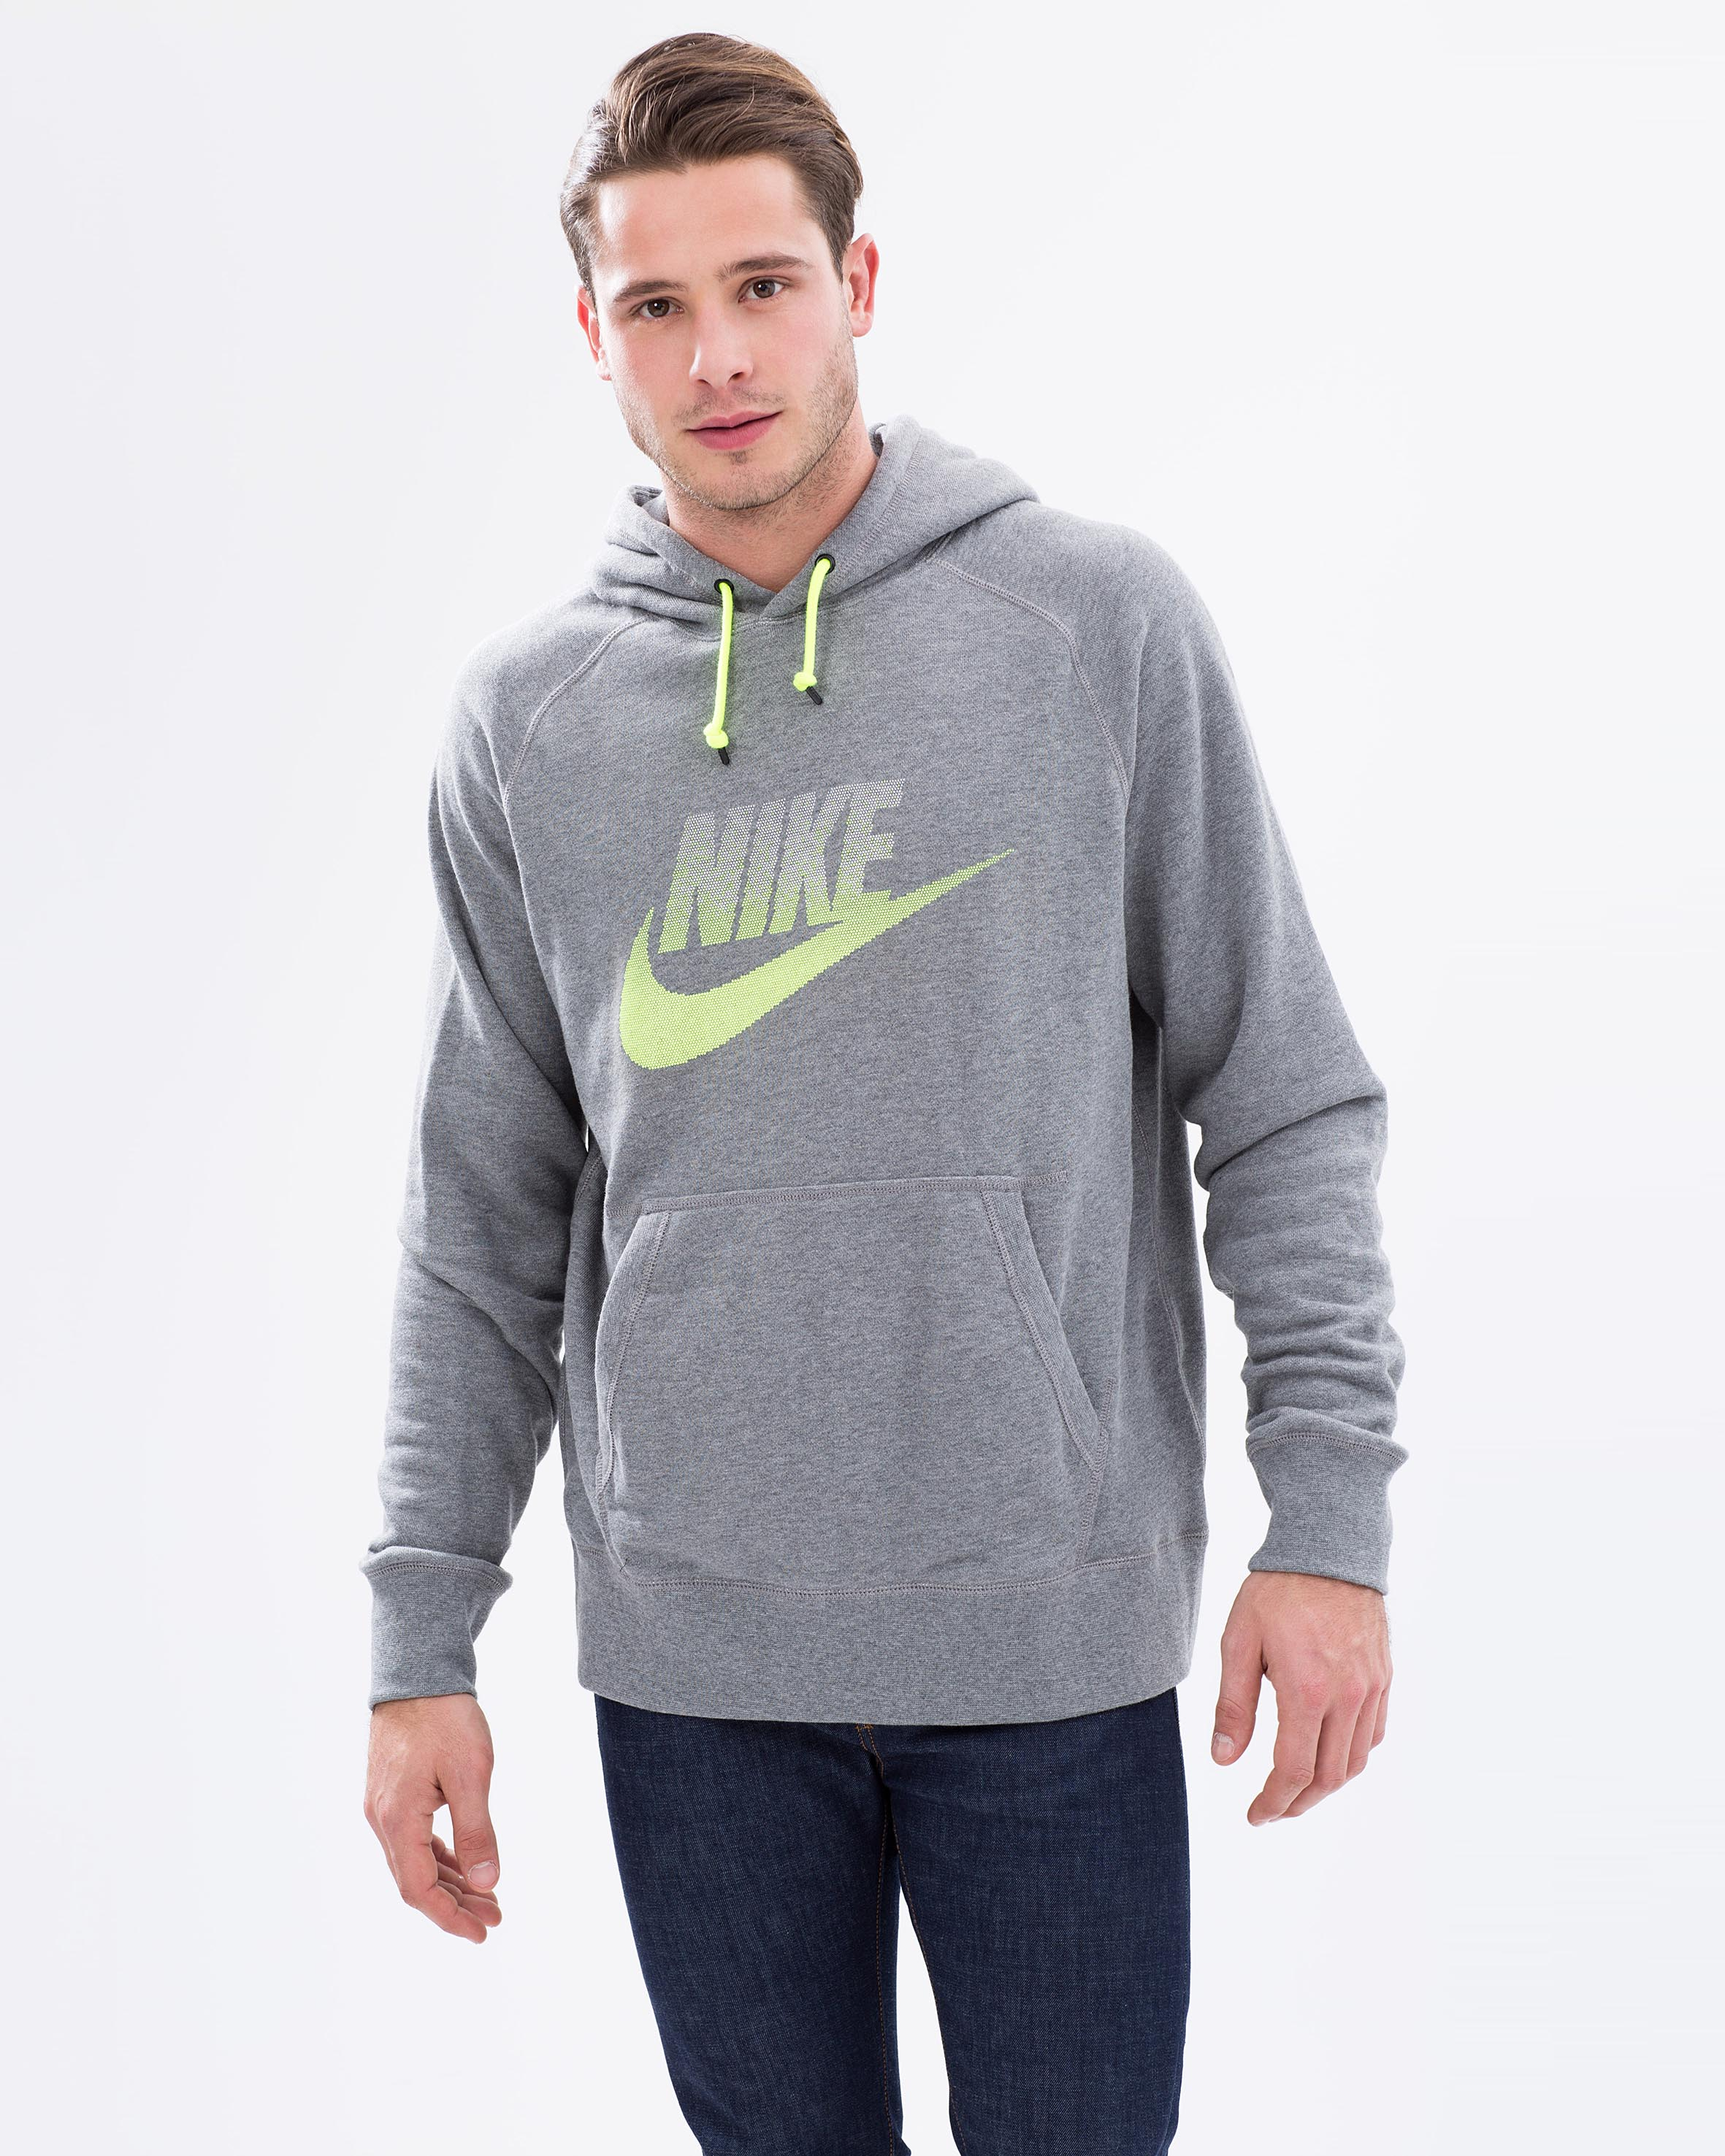 gtacashbank.ga has the lowest prices fastest delivery. Shop for cheap Blank Shirts, T-shirts, polo shirts, jackets, Tee Shirts, knit shirts, fleece pullovers, denim.